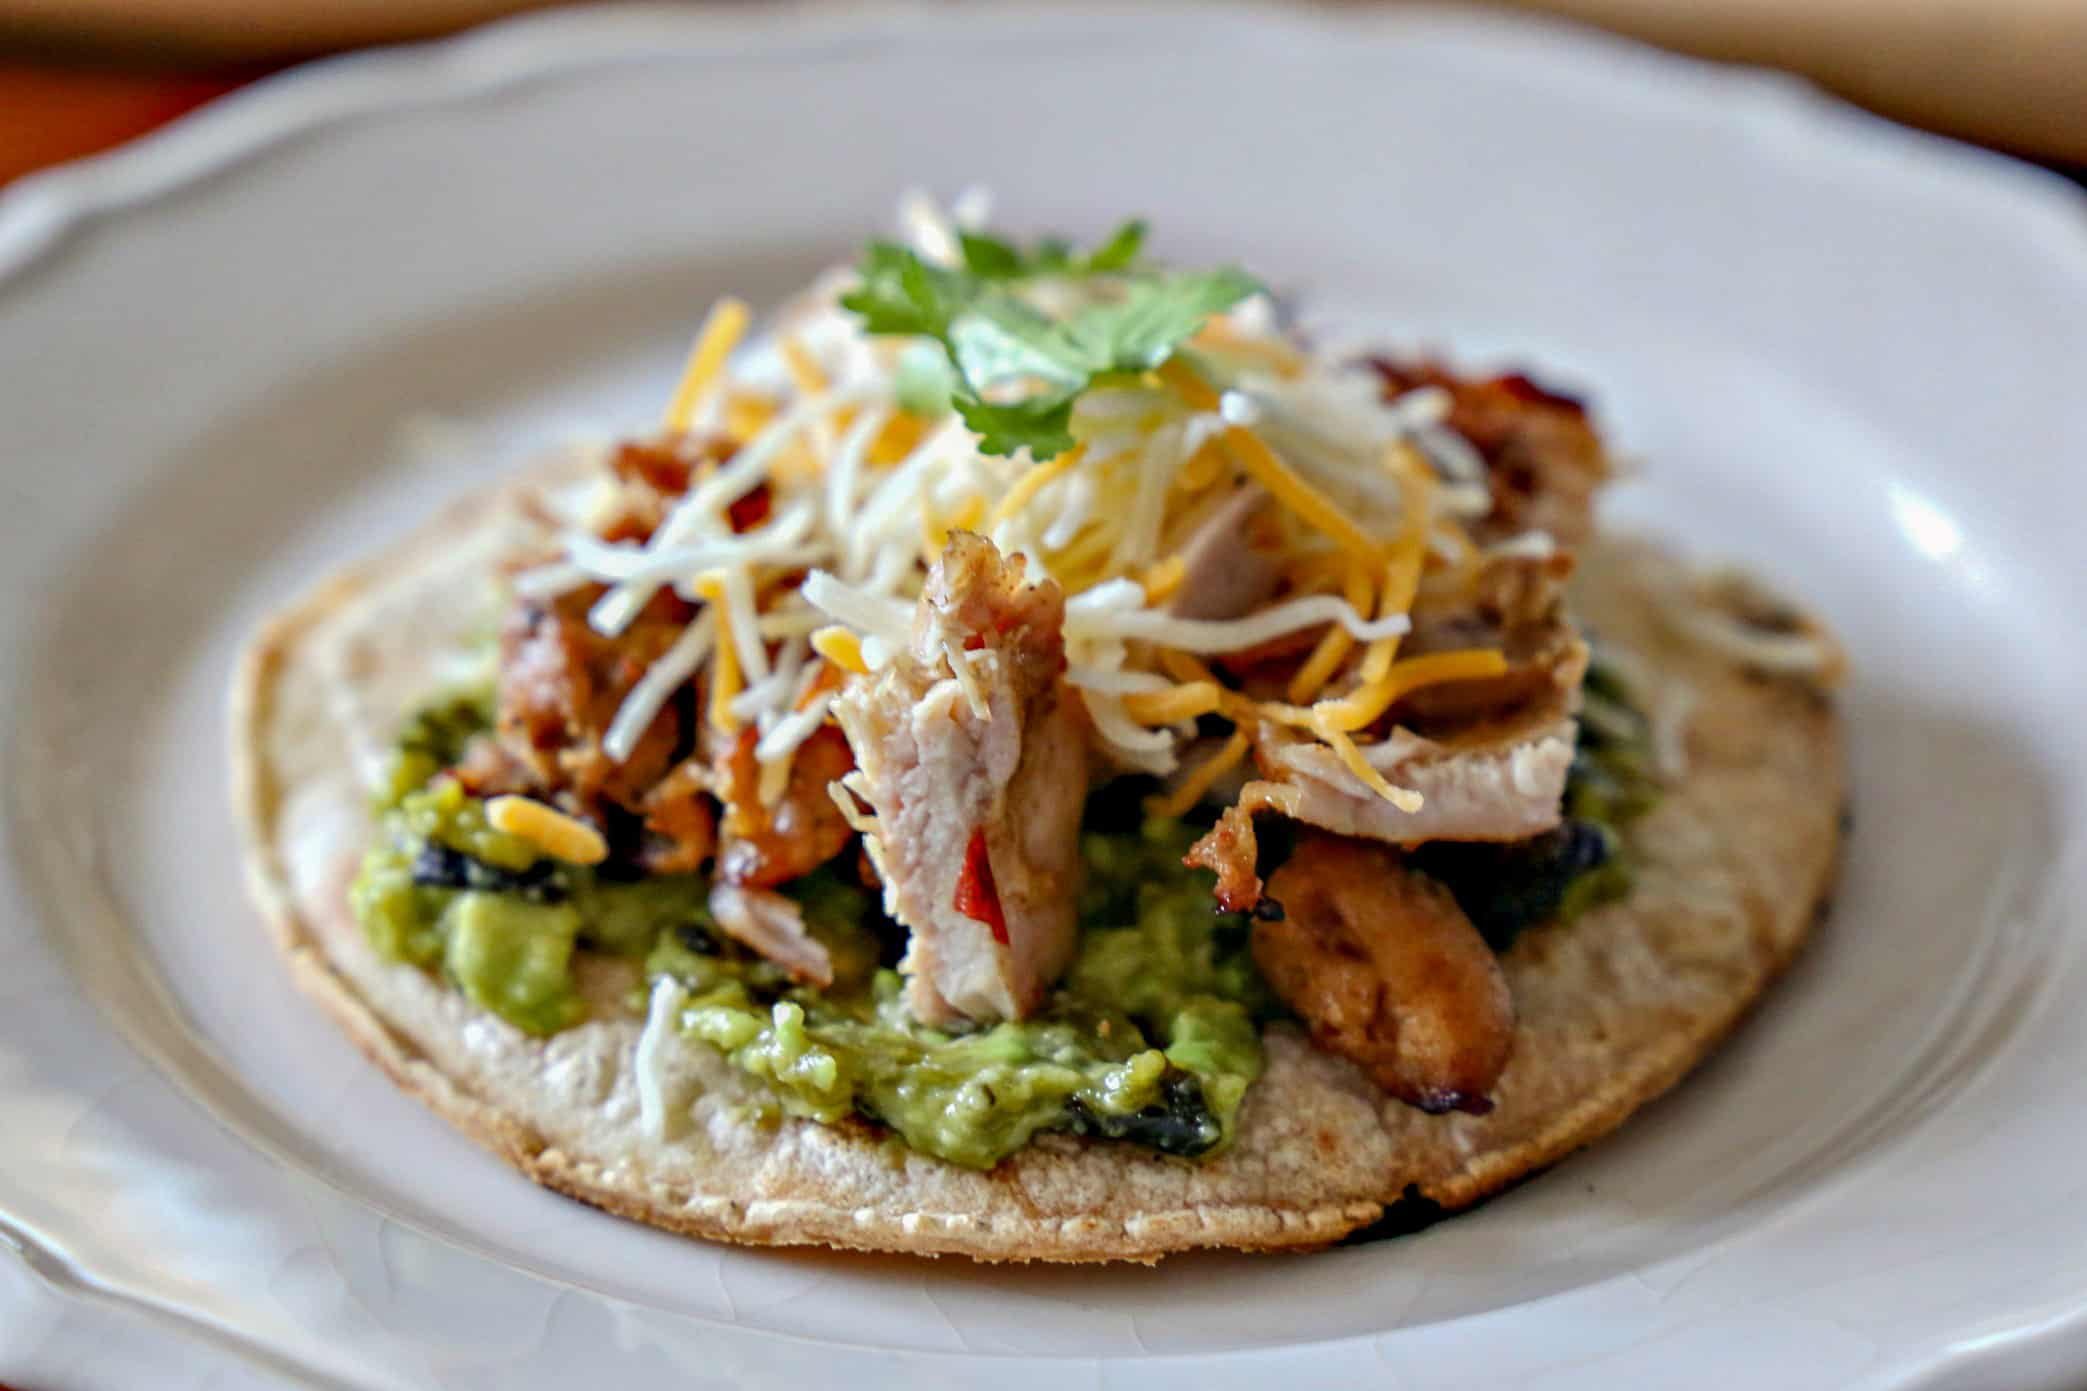 tostada with toppings